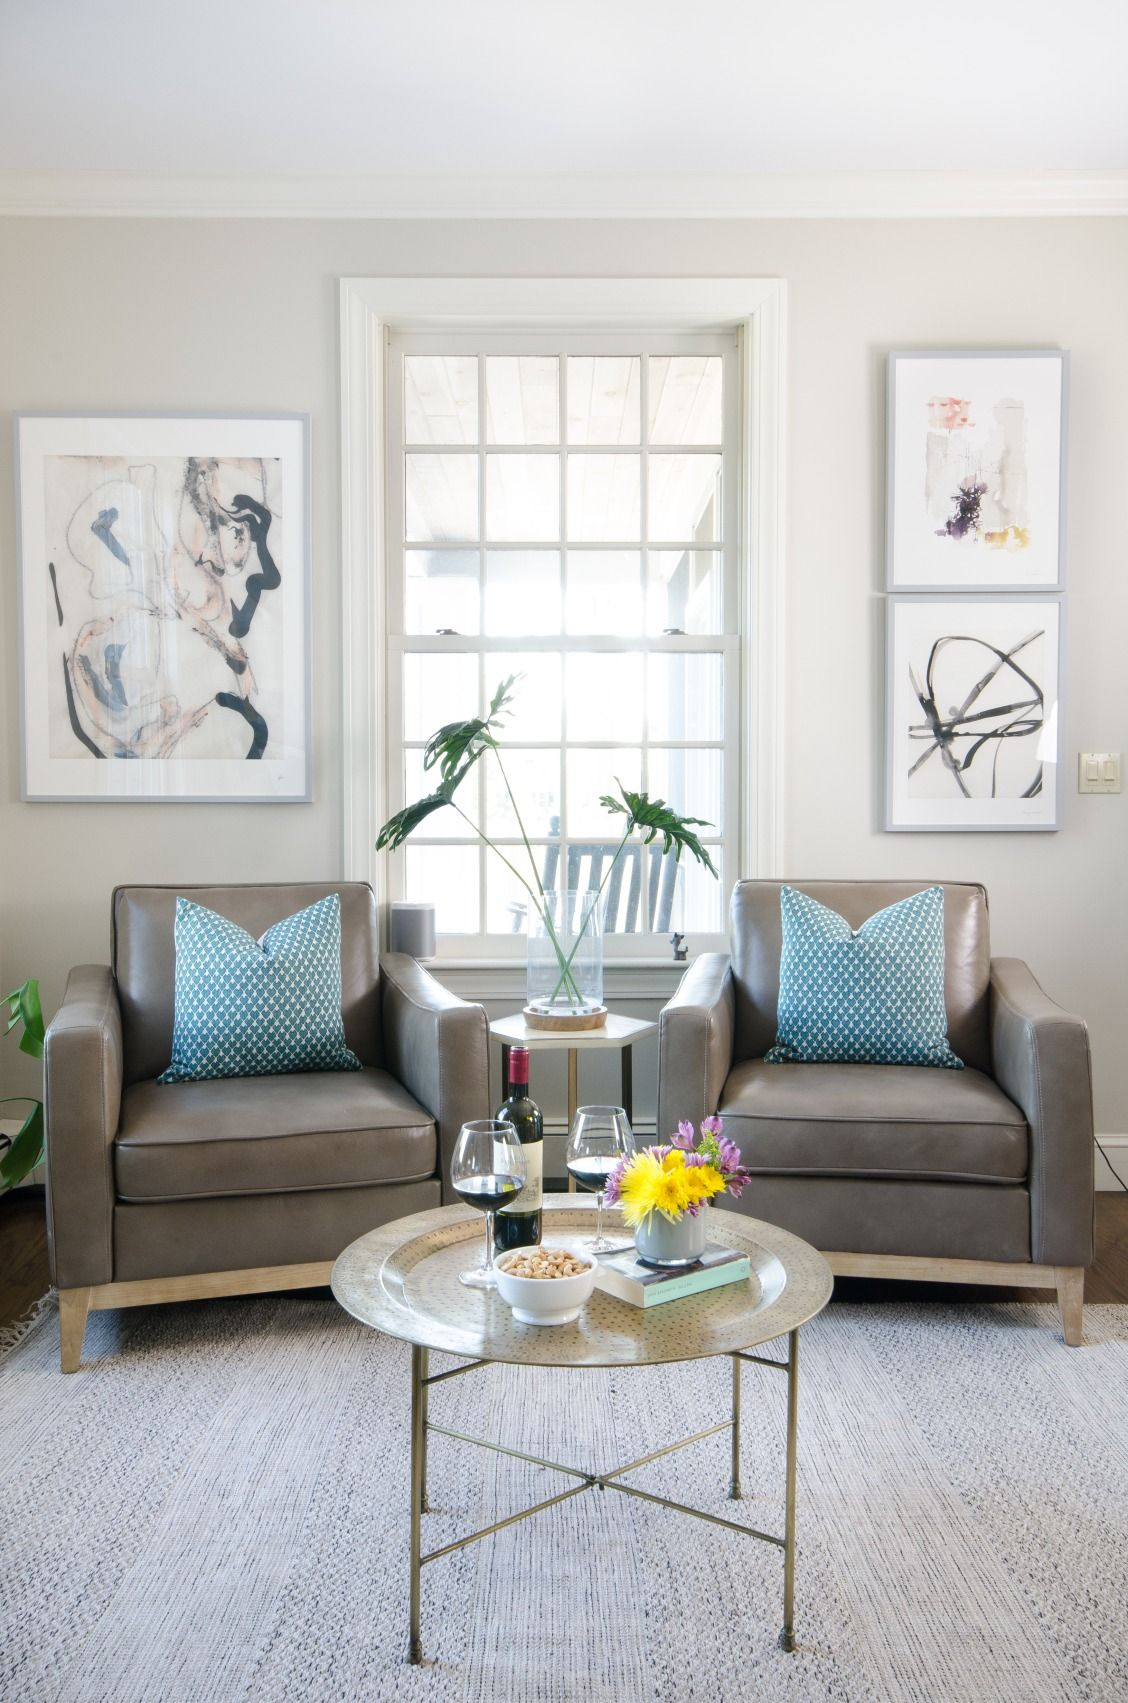 living room in blue%0A If you want your living room to look chic and on trend  the Berkley chair